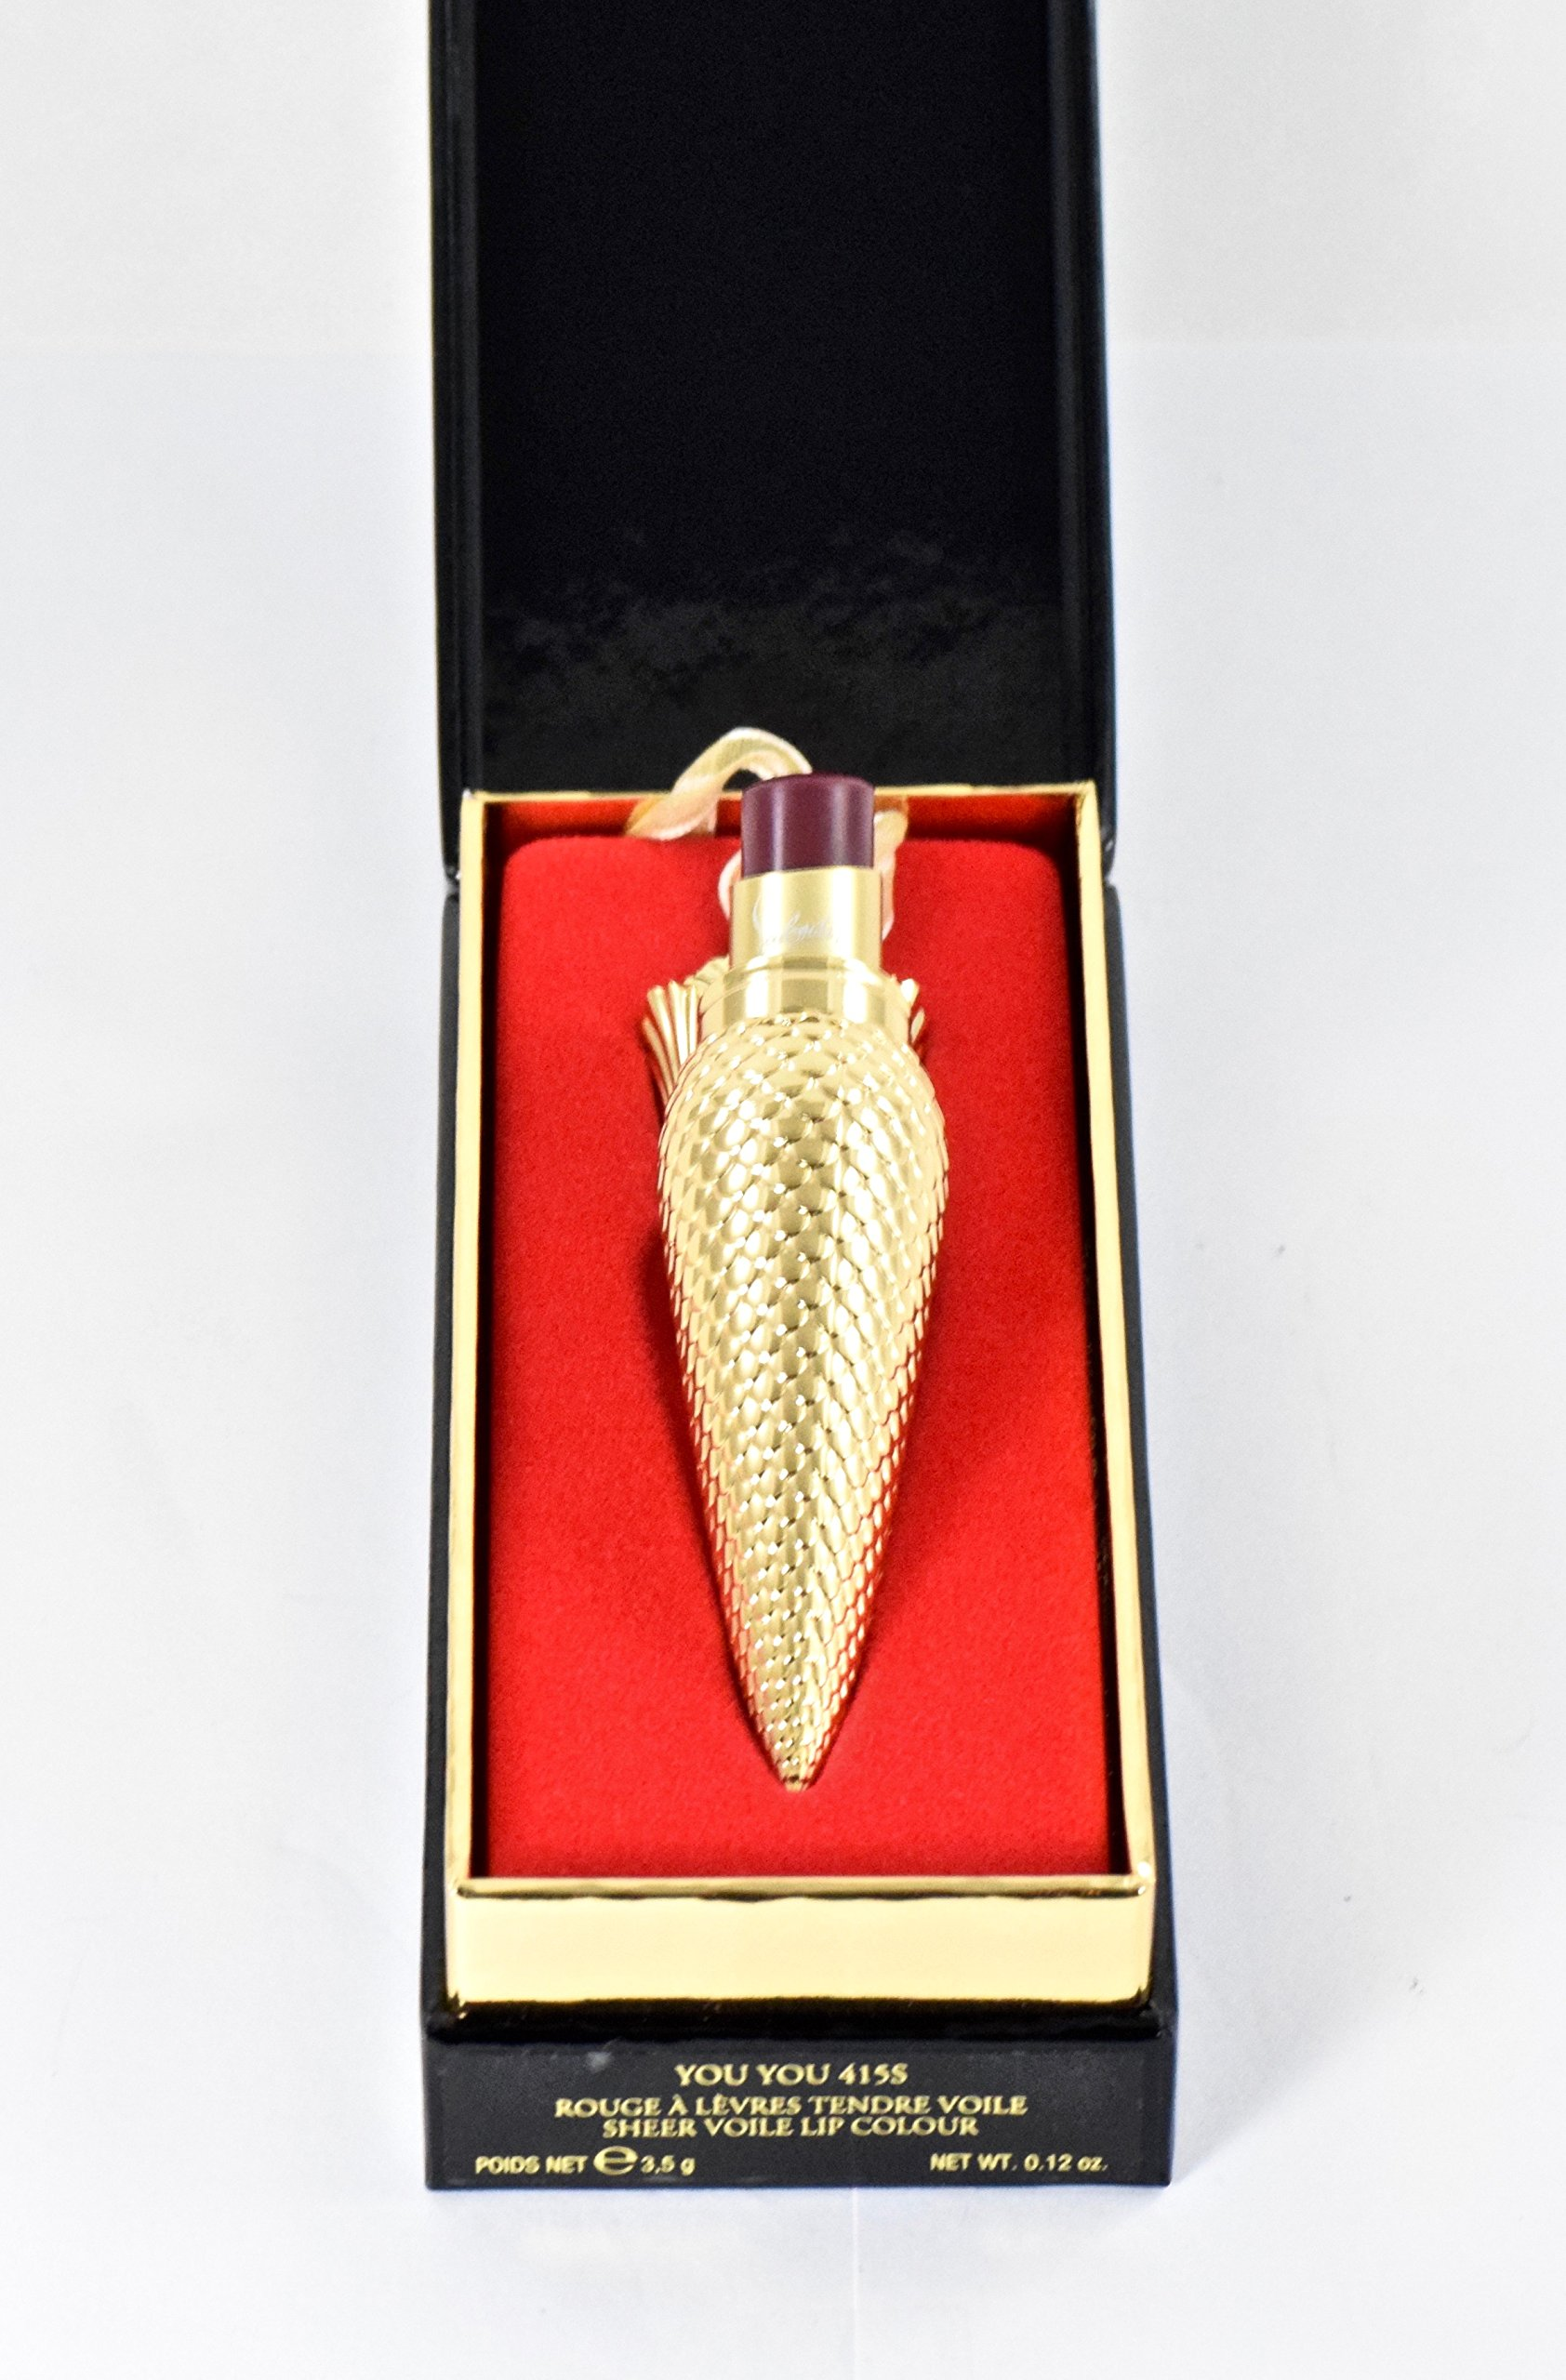 Christian Louboutin Sheer Voile Lip Colour Lipstick - You You 415S - Full Size